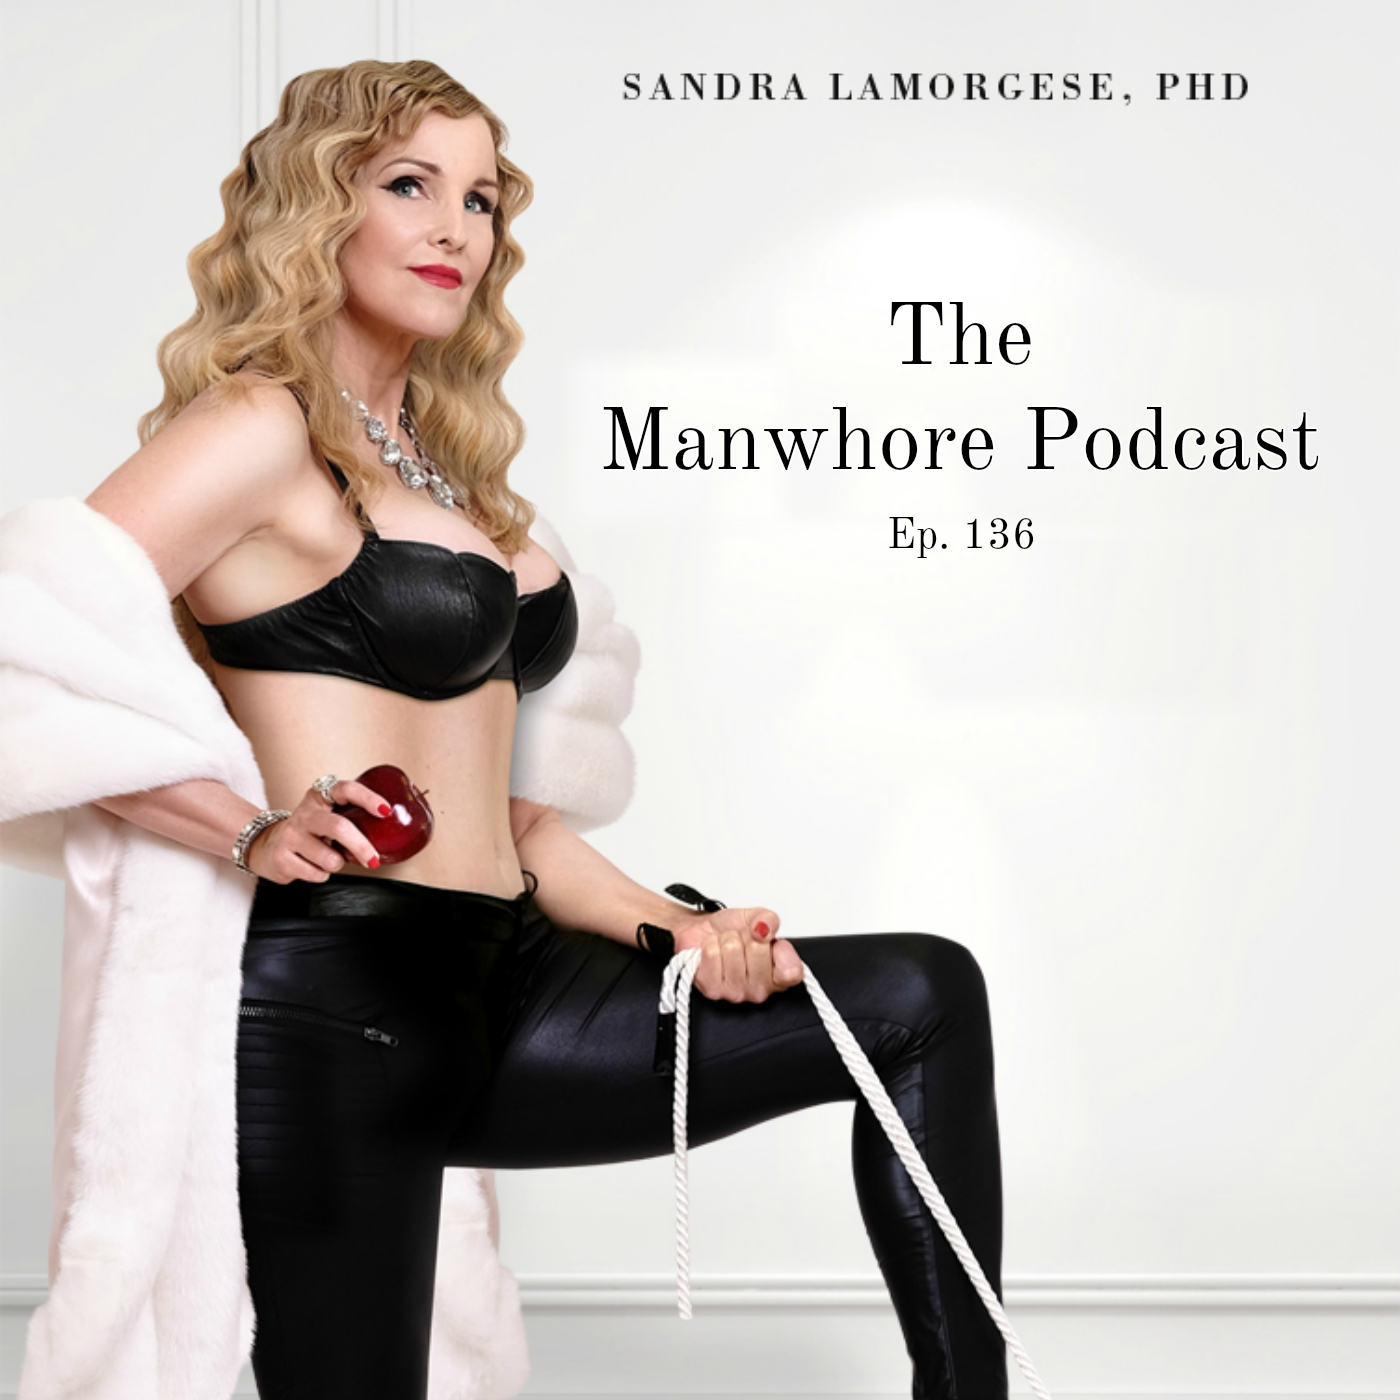 The Manwhore Podcast: A Sex-Positive Quest - Ep. 136: Holistic Sexuality & BDSM with dominatrix Sandra LaMorgese